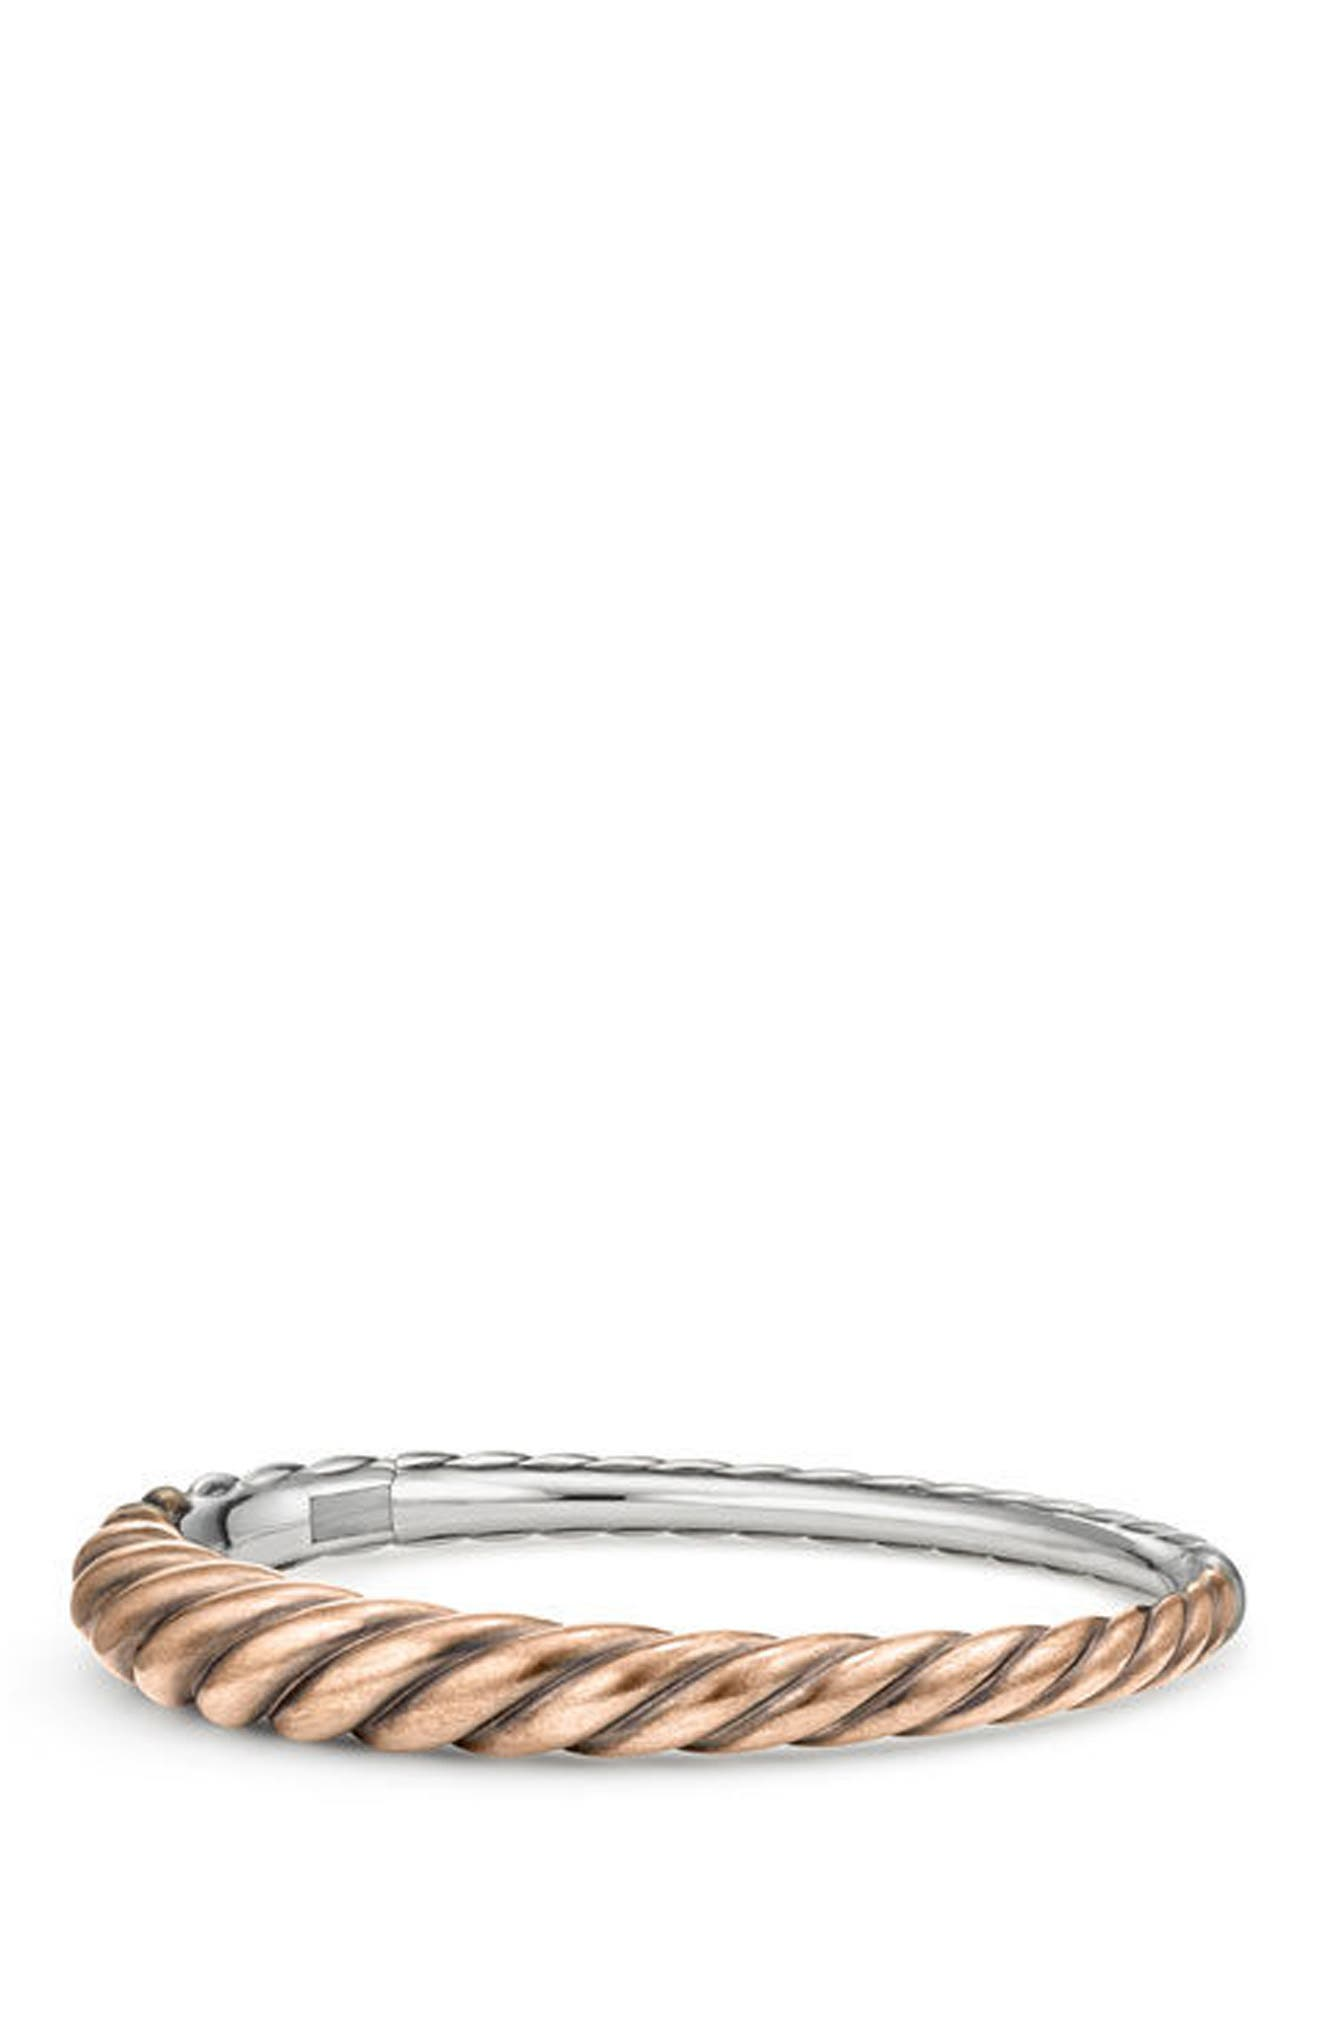 Alternate Image 1 Selected - David Yurman Pure Form Mixed Metal Cable Bracelet with Bronze and Silver, 9.5mm